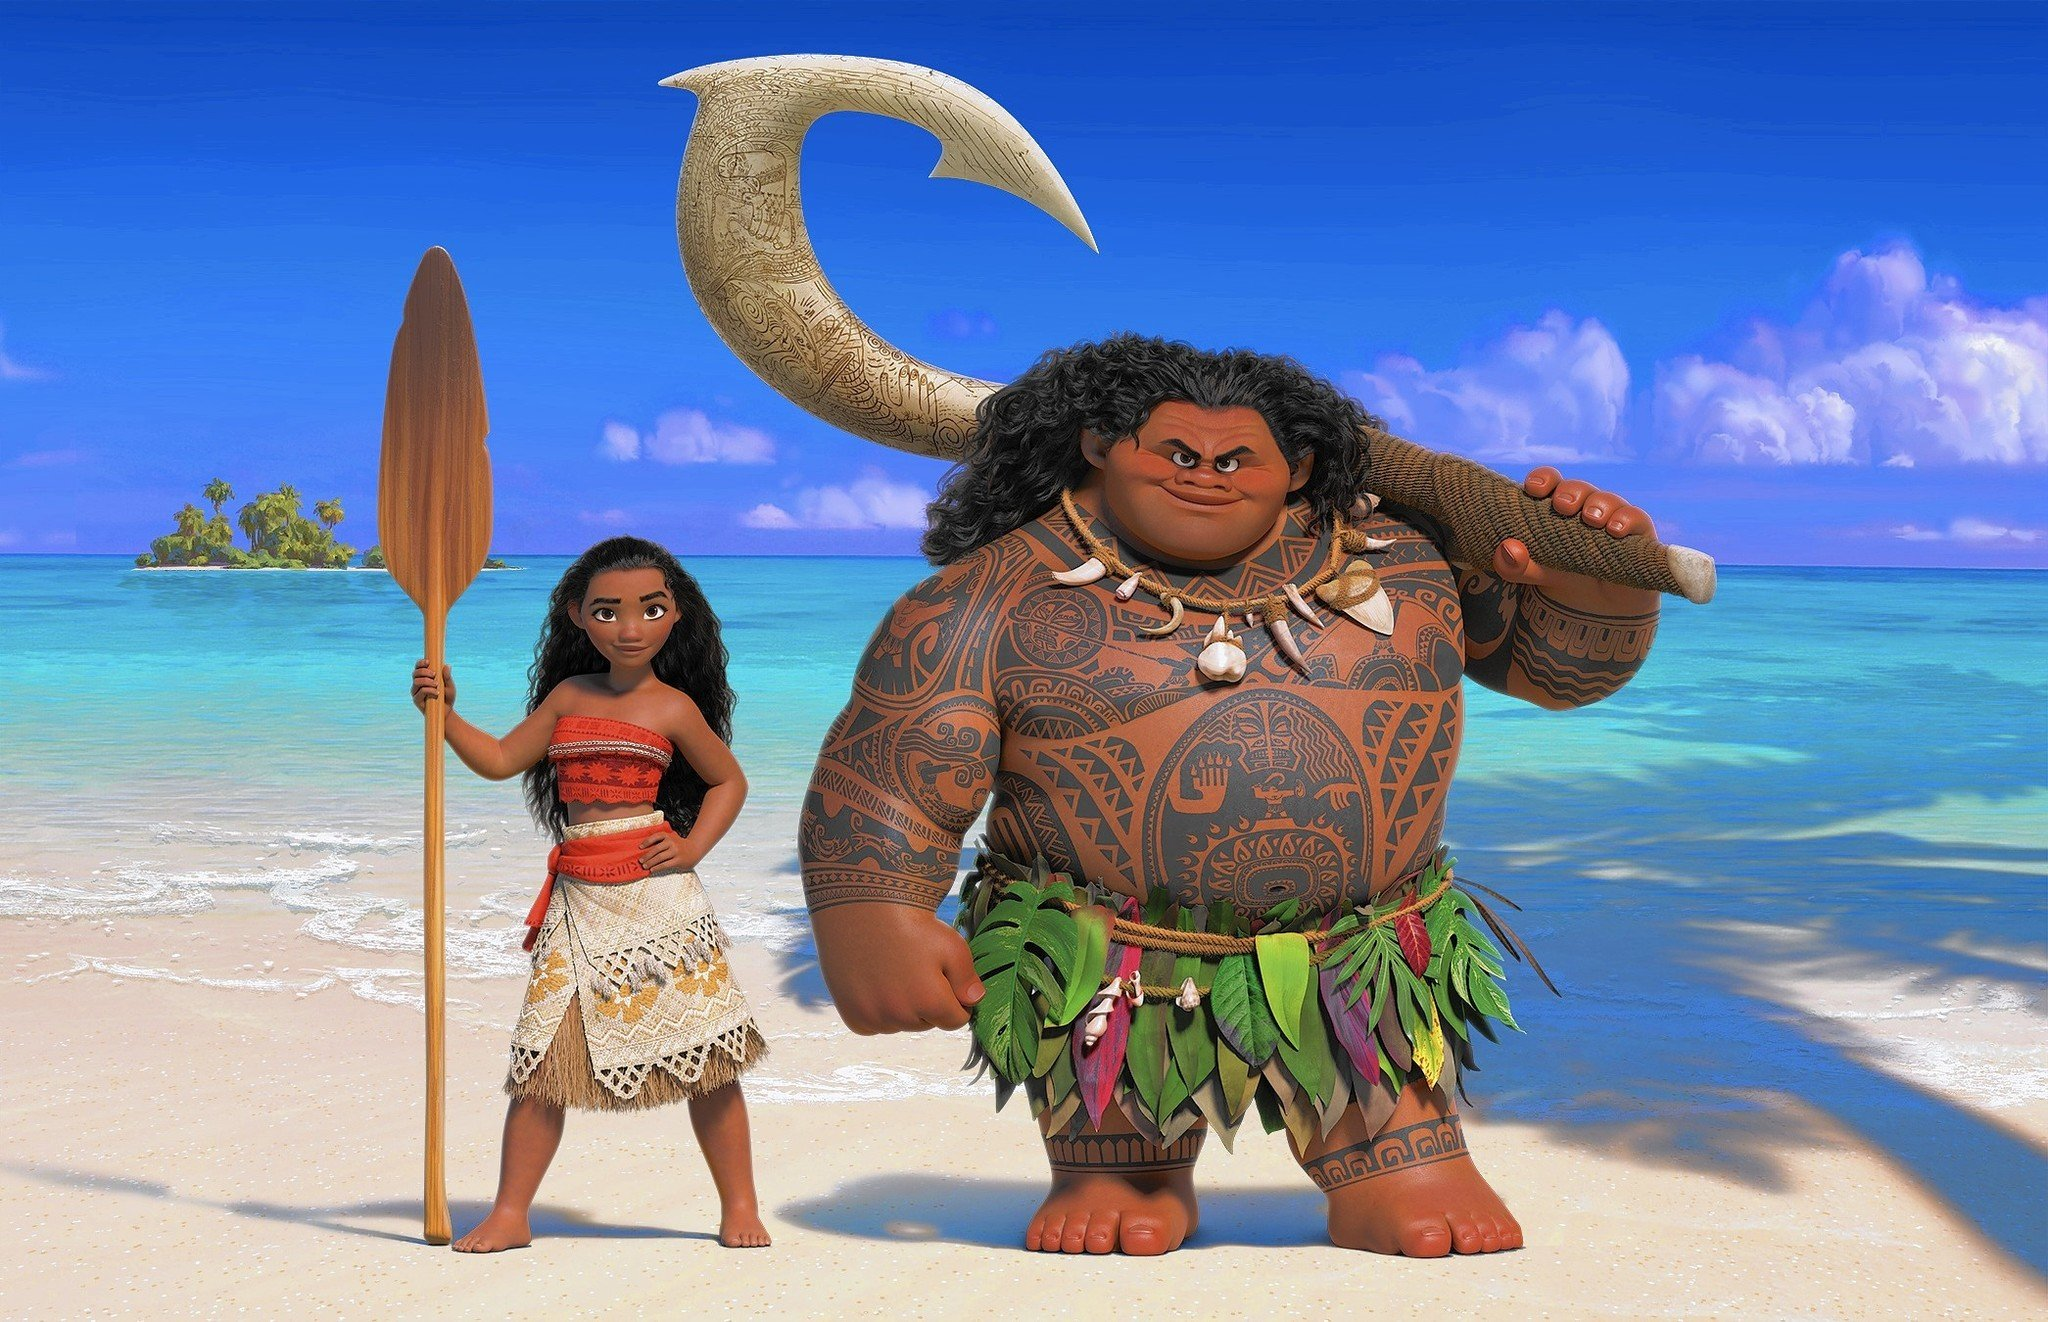 ct-disney-moana-costume-controversy-balancing-1004-20161004